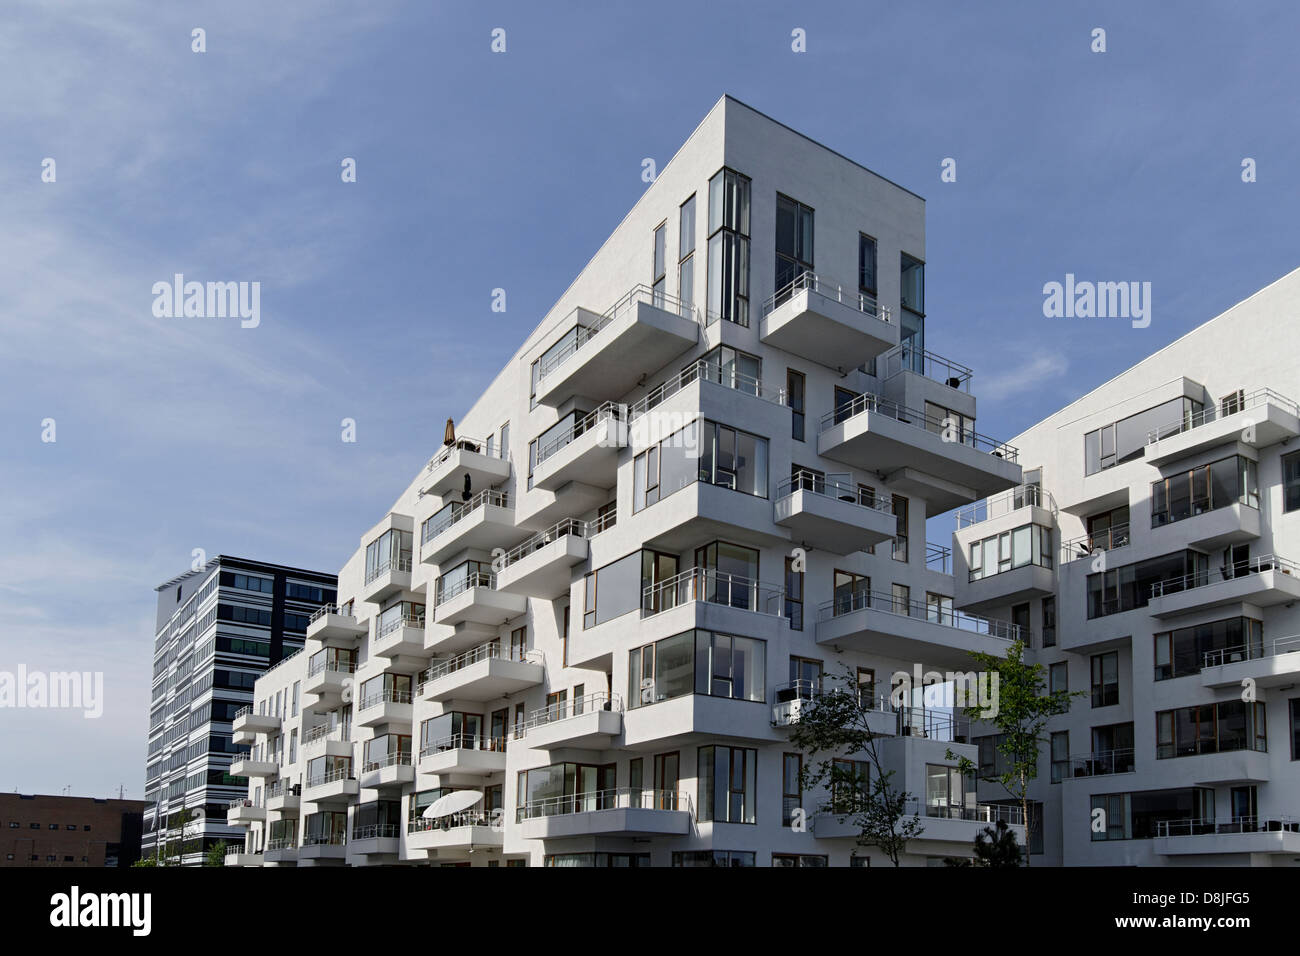 Modern Apartment Buildings, Copenhagen, Denmark